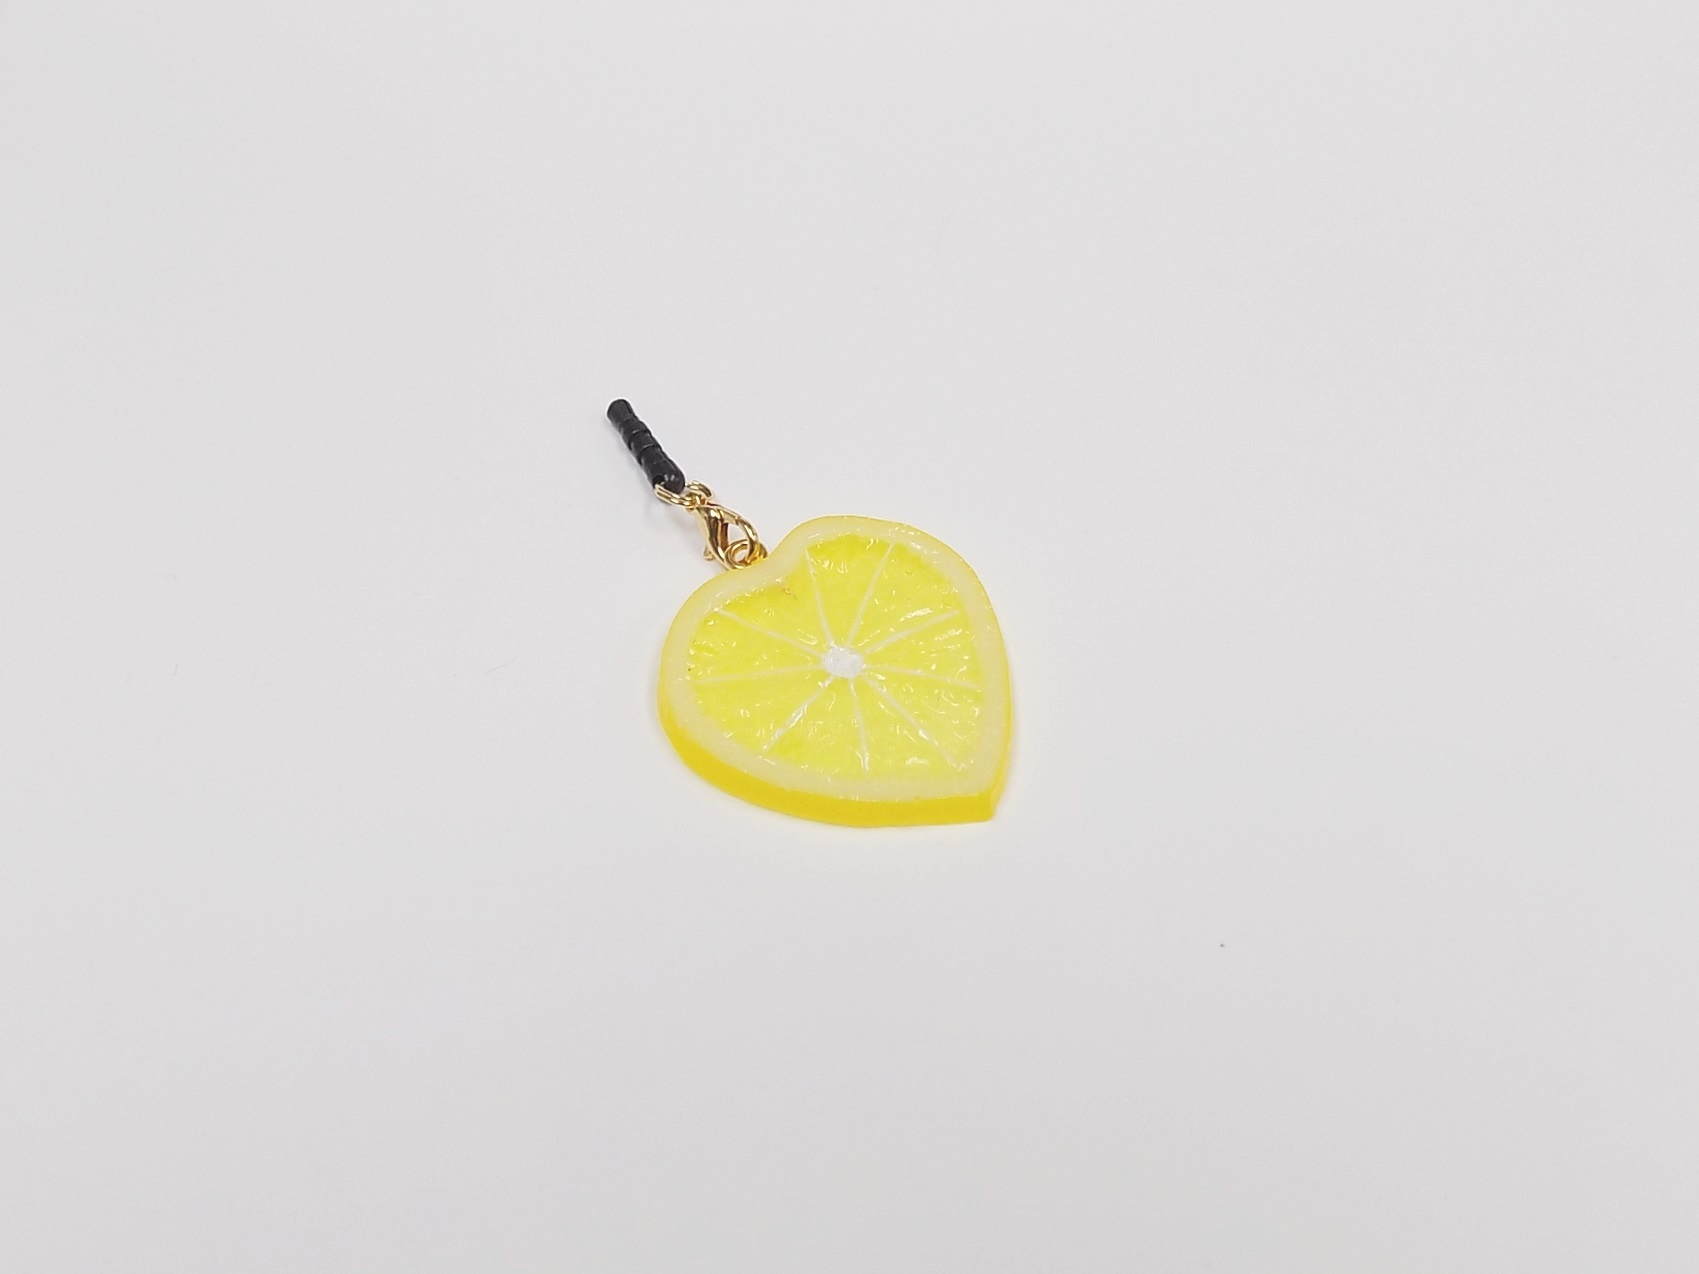 Lemon Slice (Heart-Shaped) Headphone Jack Plug